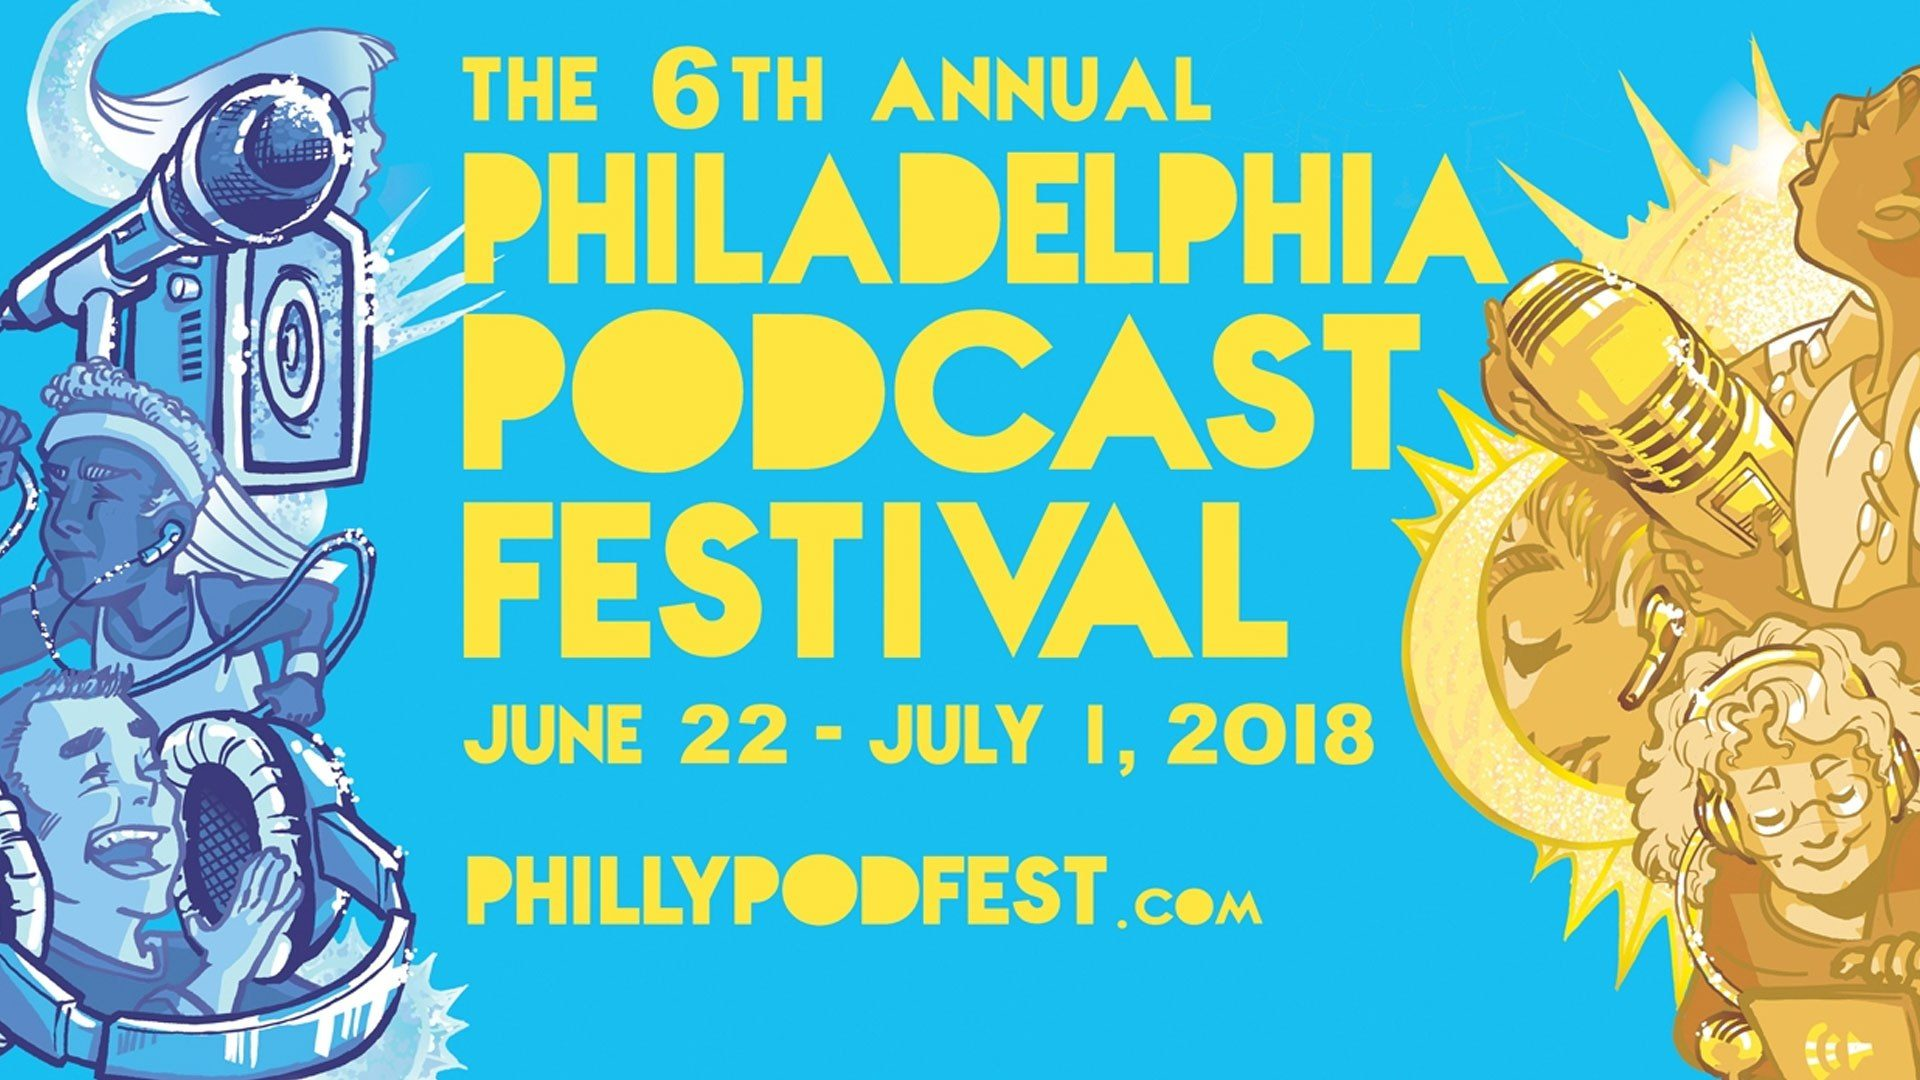 full belly laughs podcast episode 132 6th annual philadelphia podcast festival audio artwork